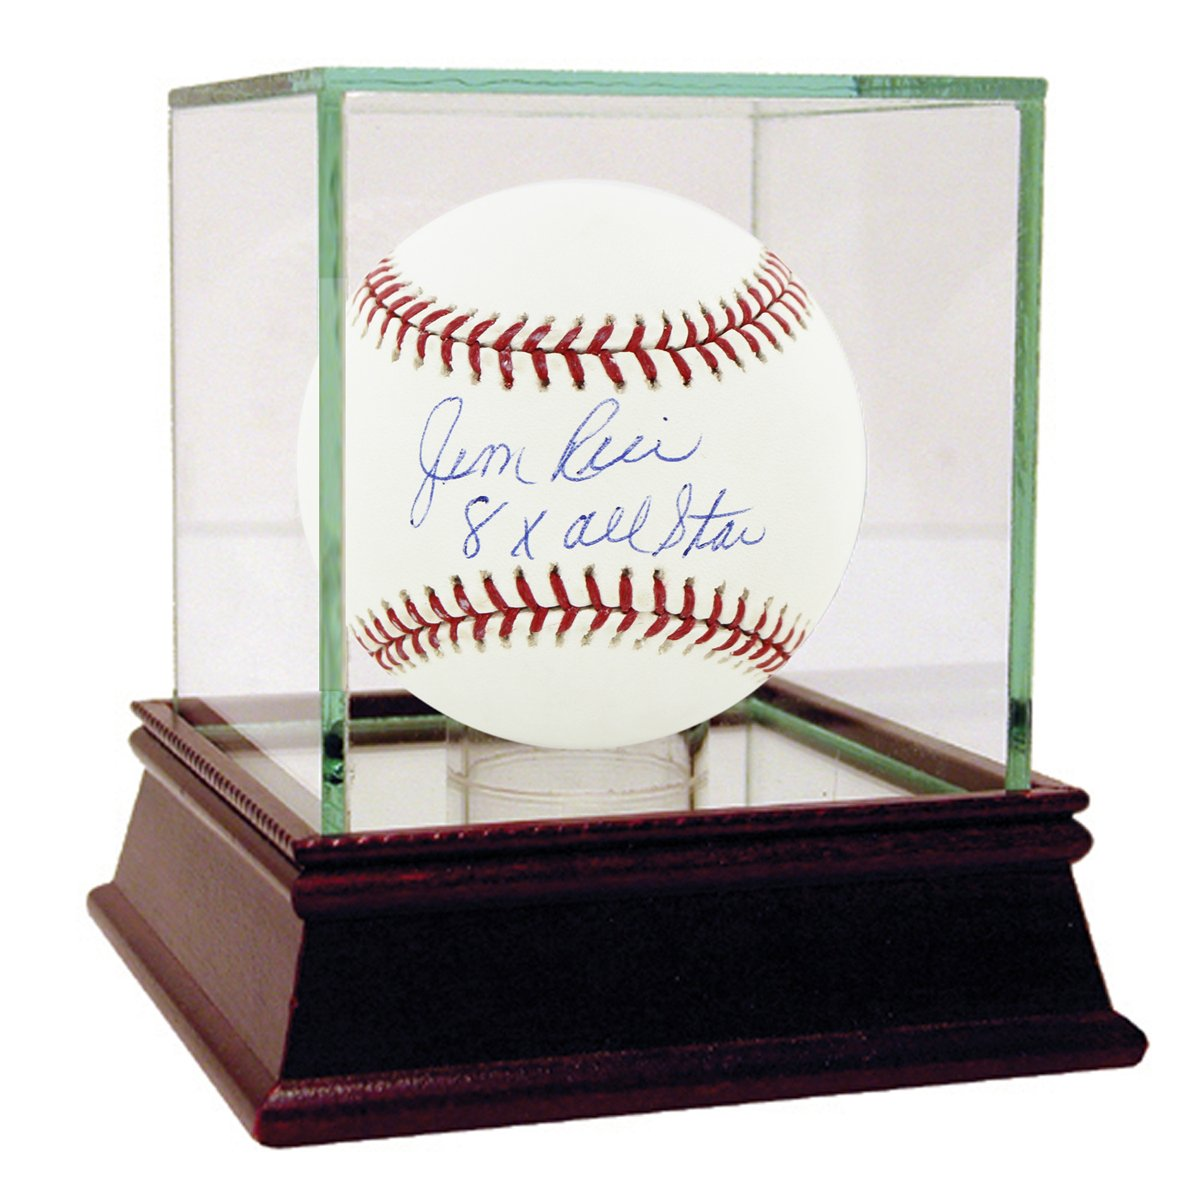 Steiner Sports MLB Boston Red Sox Jim Rice Signed Baseball with 8x All Star Inscribed RICEBAS000020